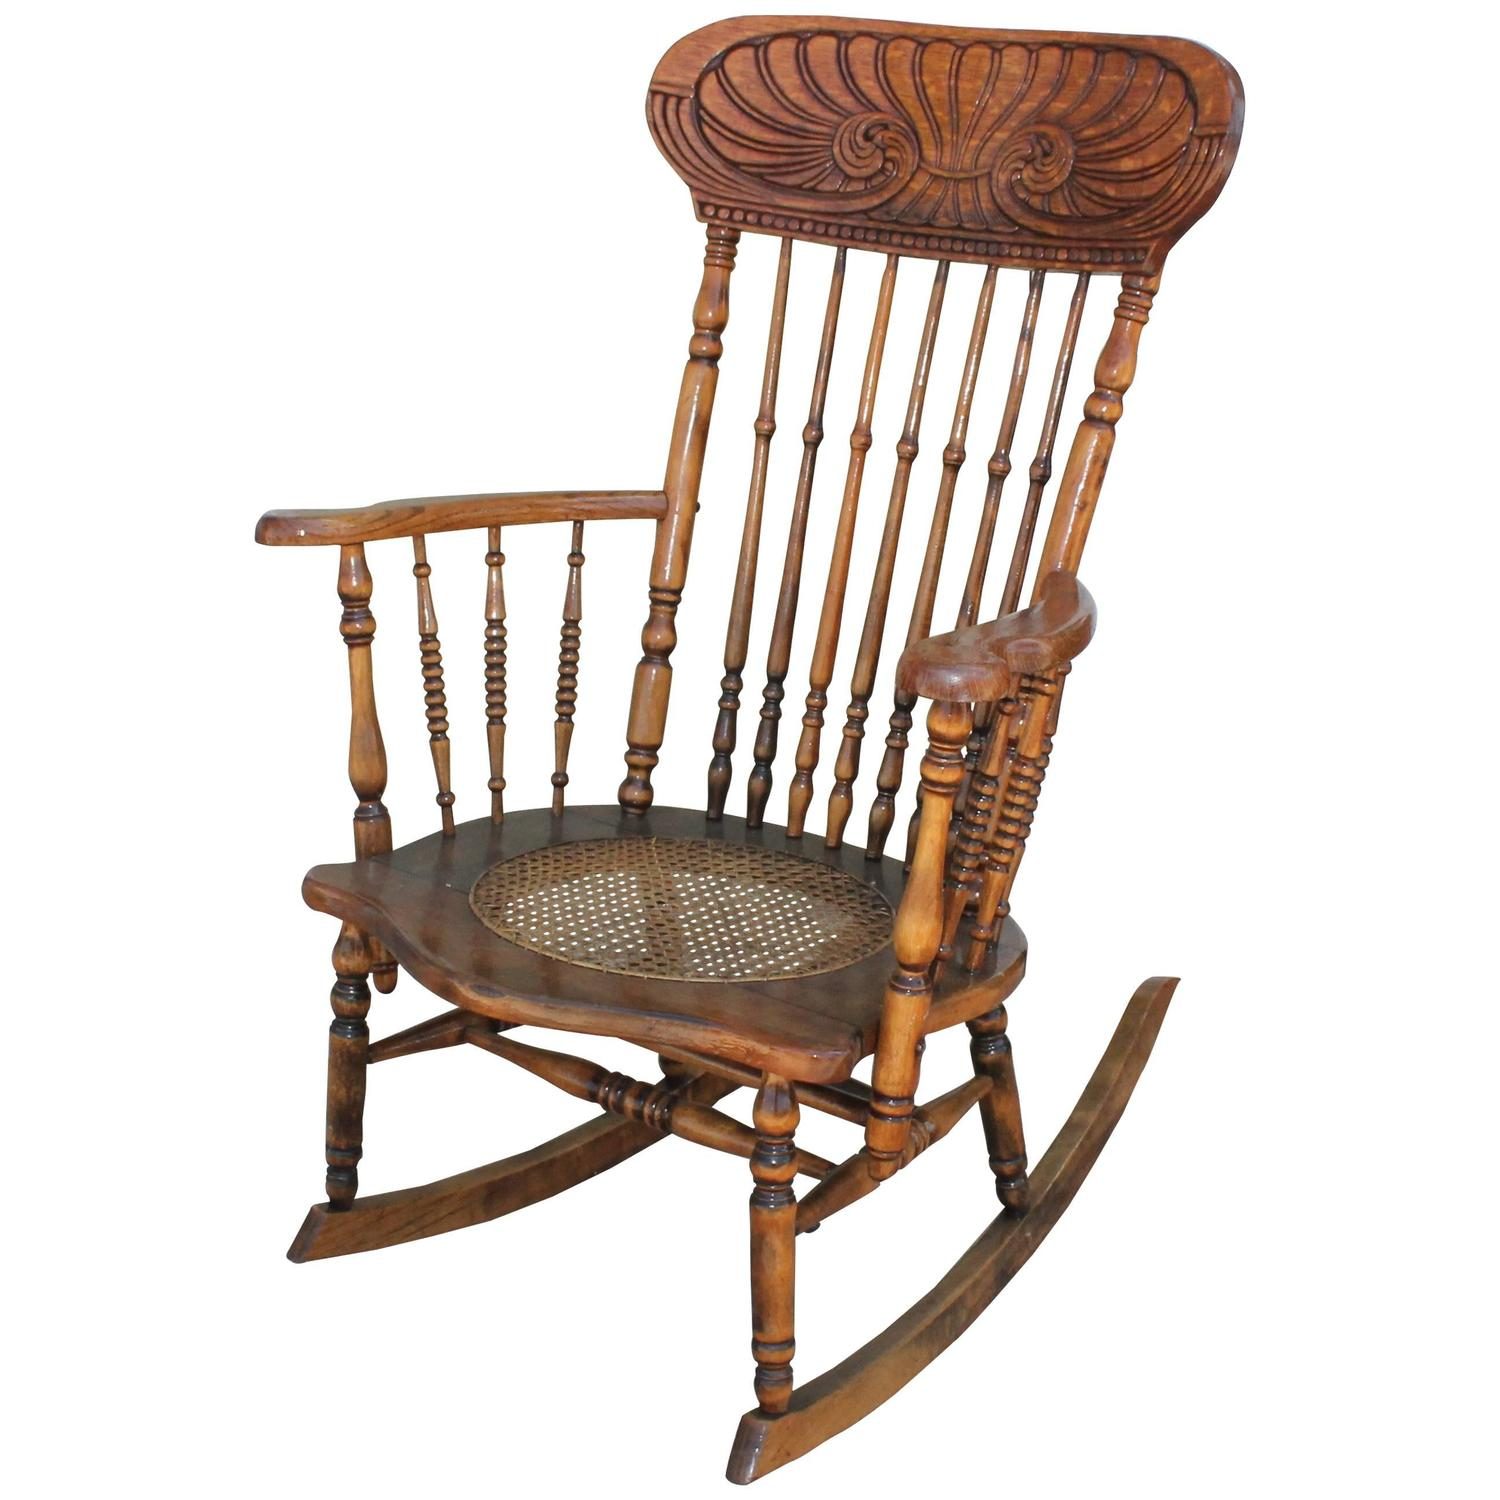 Early 20th Century Press Back Adirondack Rocking Chair For Sale at